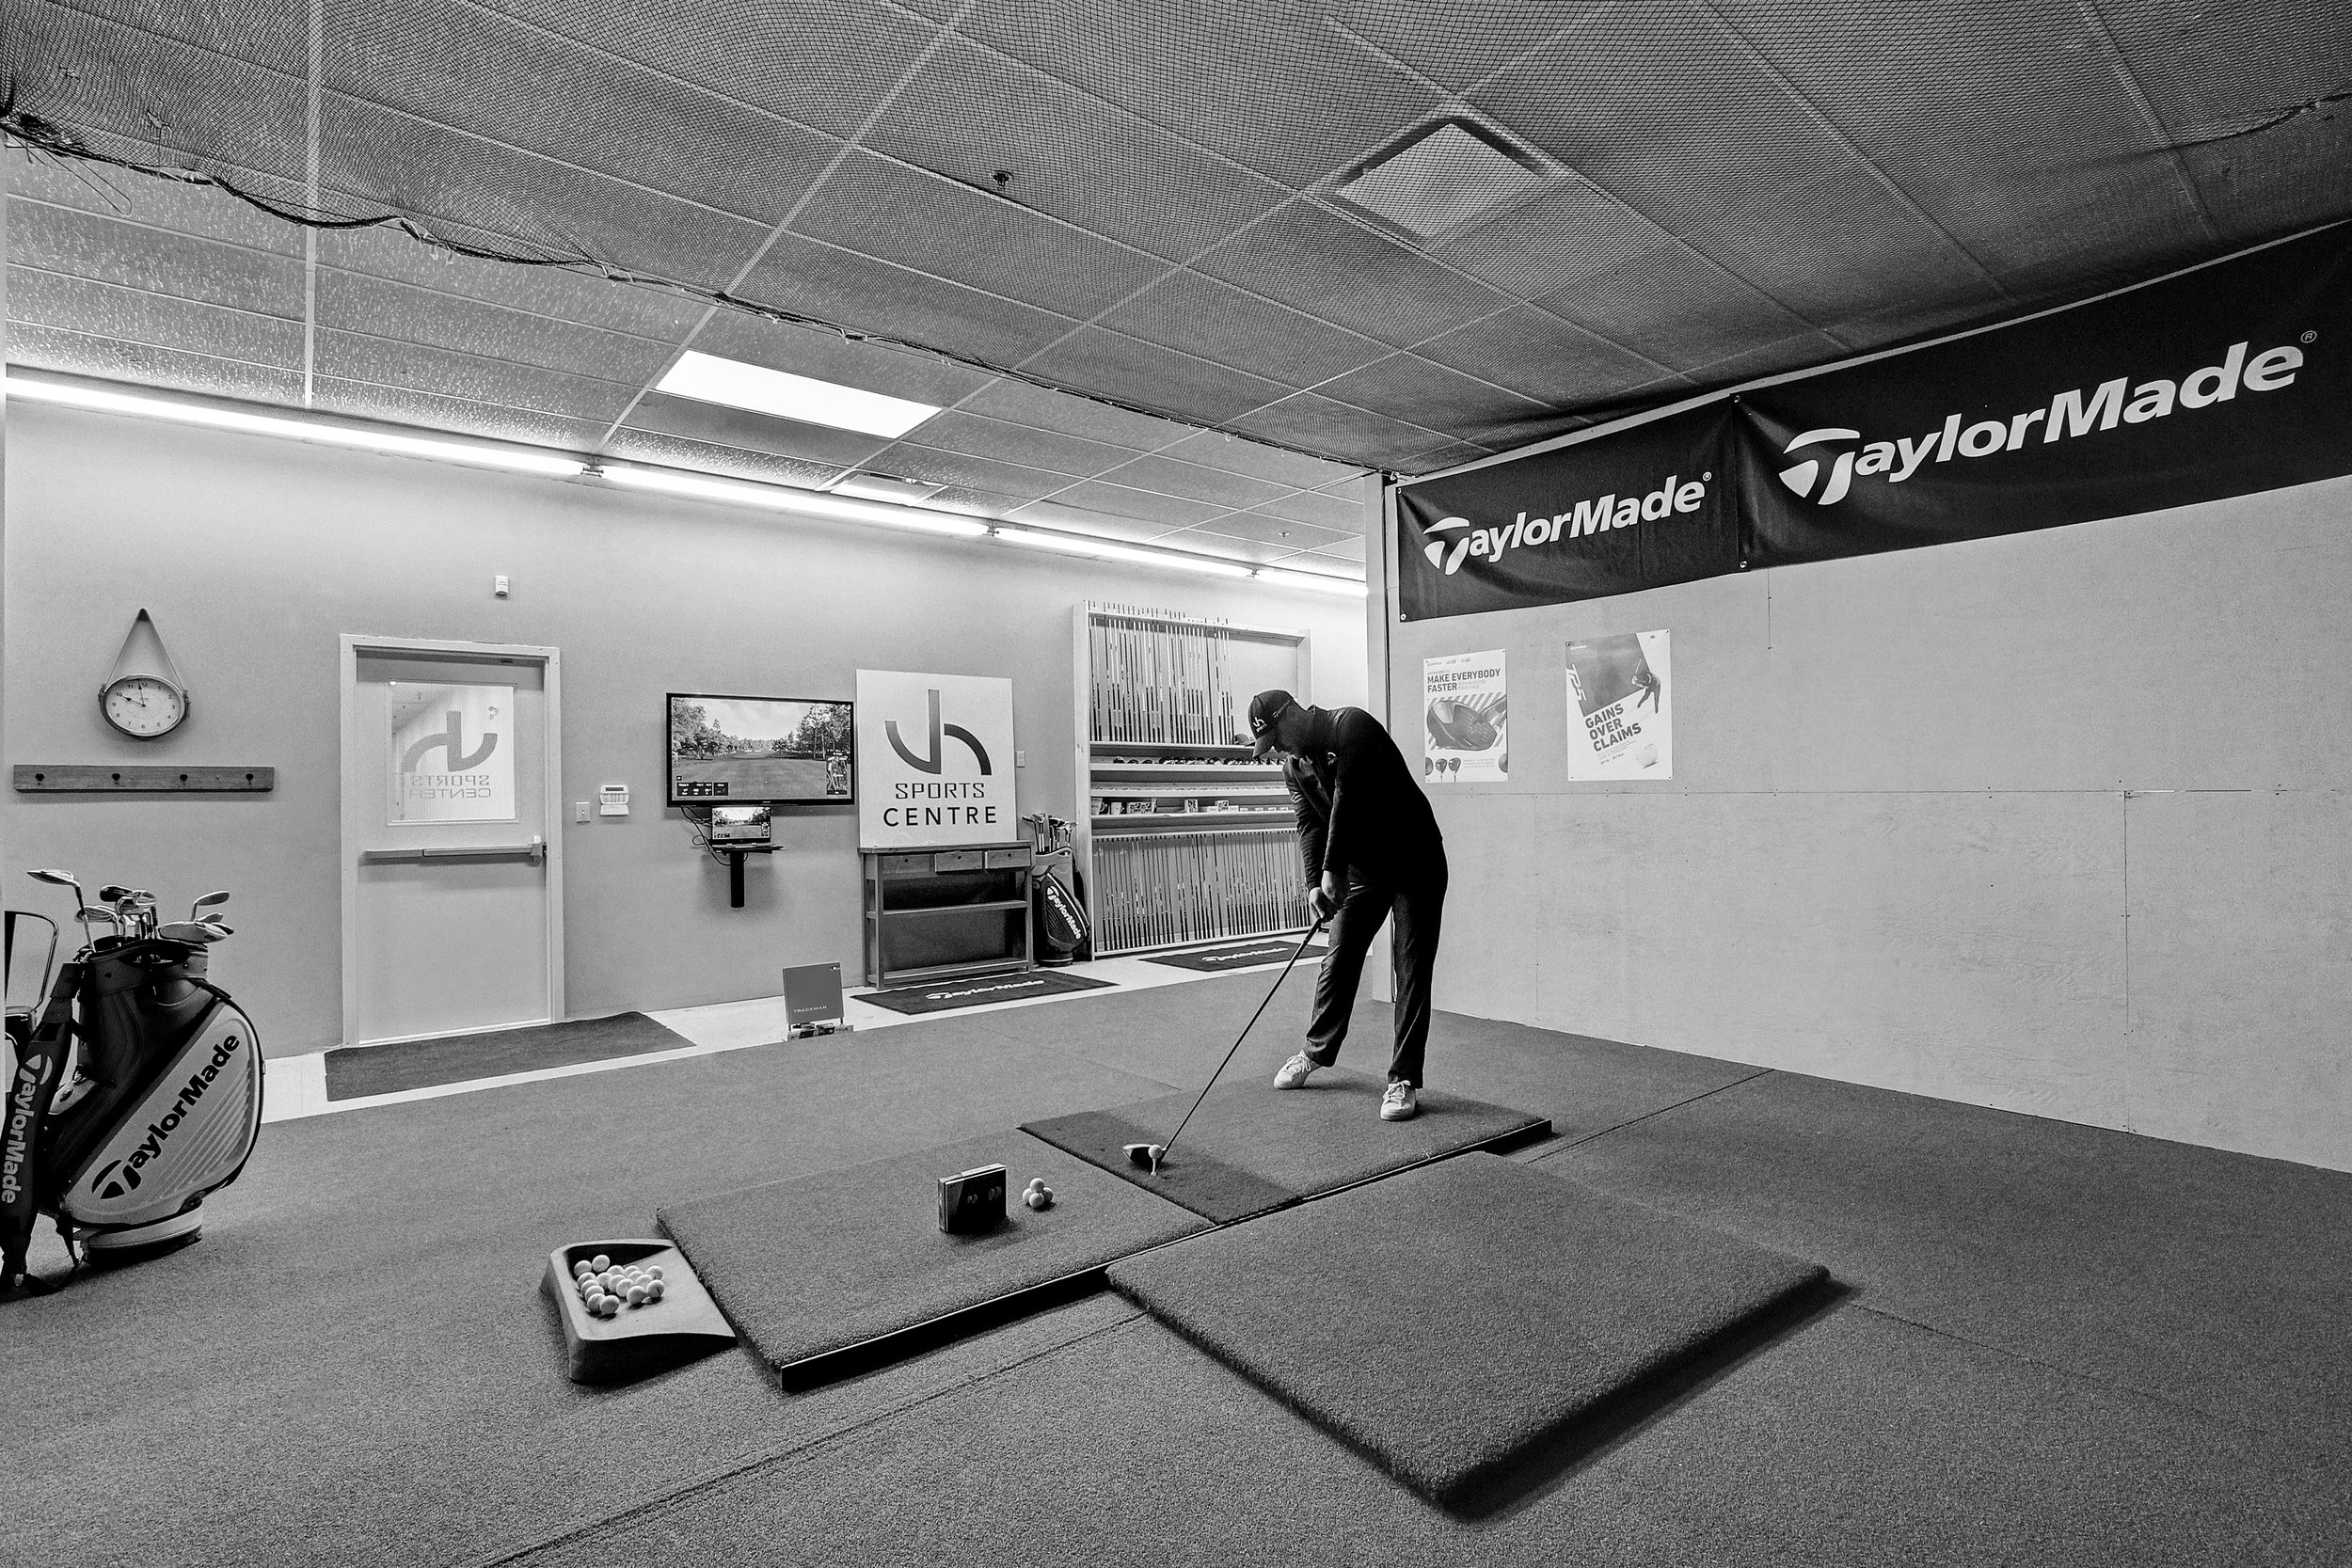 Trackman4 Simulation Bay - Includes the same performance software from the Trackman3 plus full on course simulation software. Play and Practice on over 20 courses including St. Andrews.Book 18 holes with up to 4 people,Create your own league$40/hr (Roughly an Hour Per Person for 18 holes)Book Now→